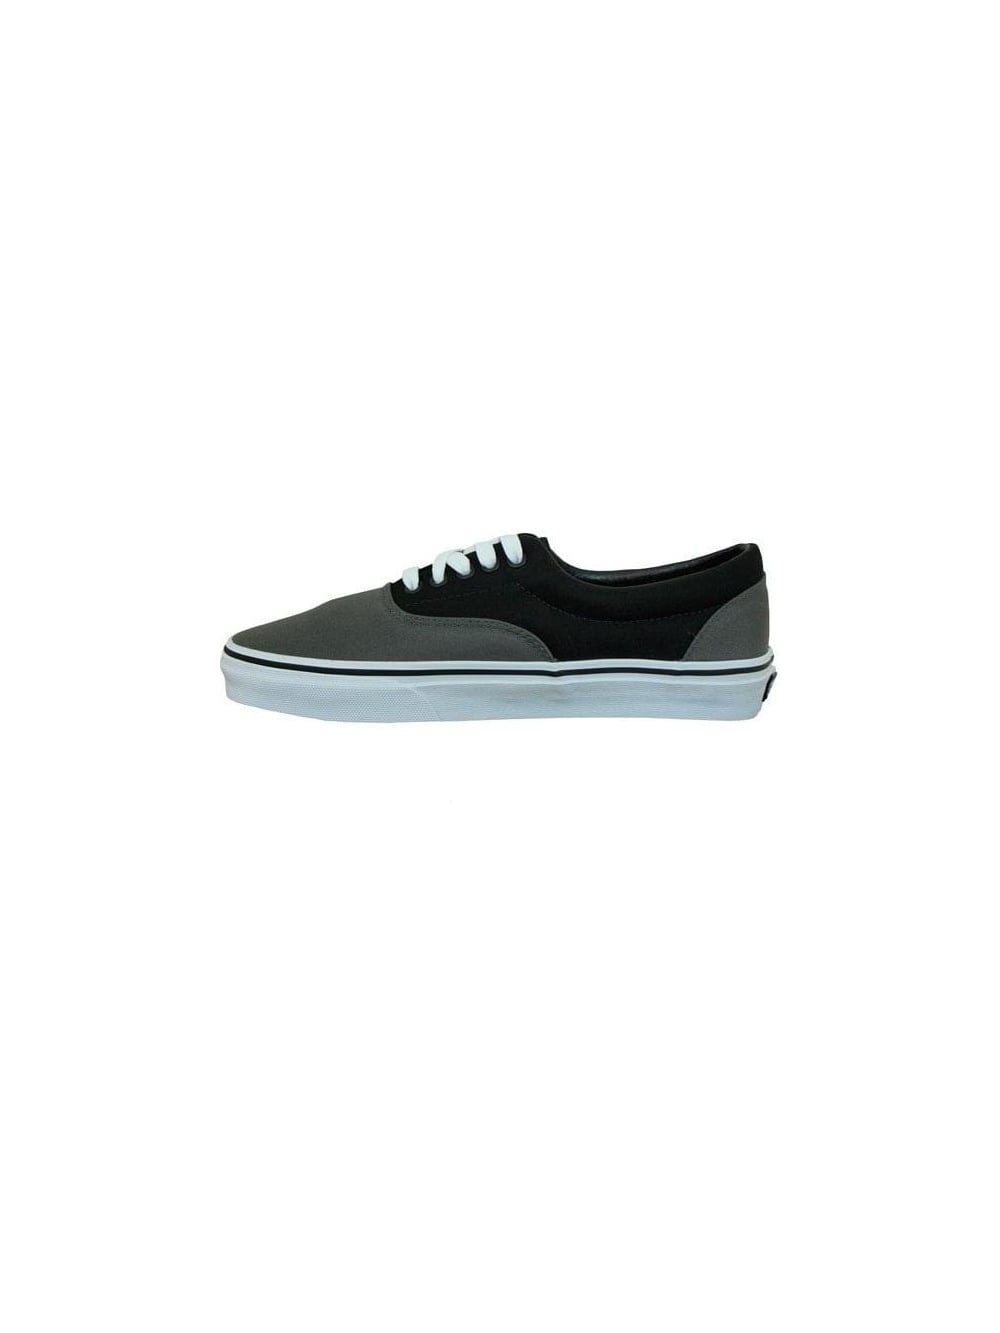 d65a4264d9c4a4 Vans Era Canvas in Pewter Black - Northern Threads